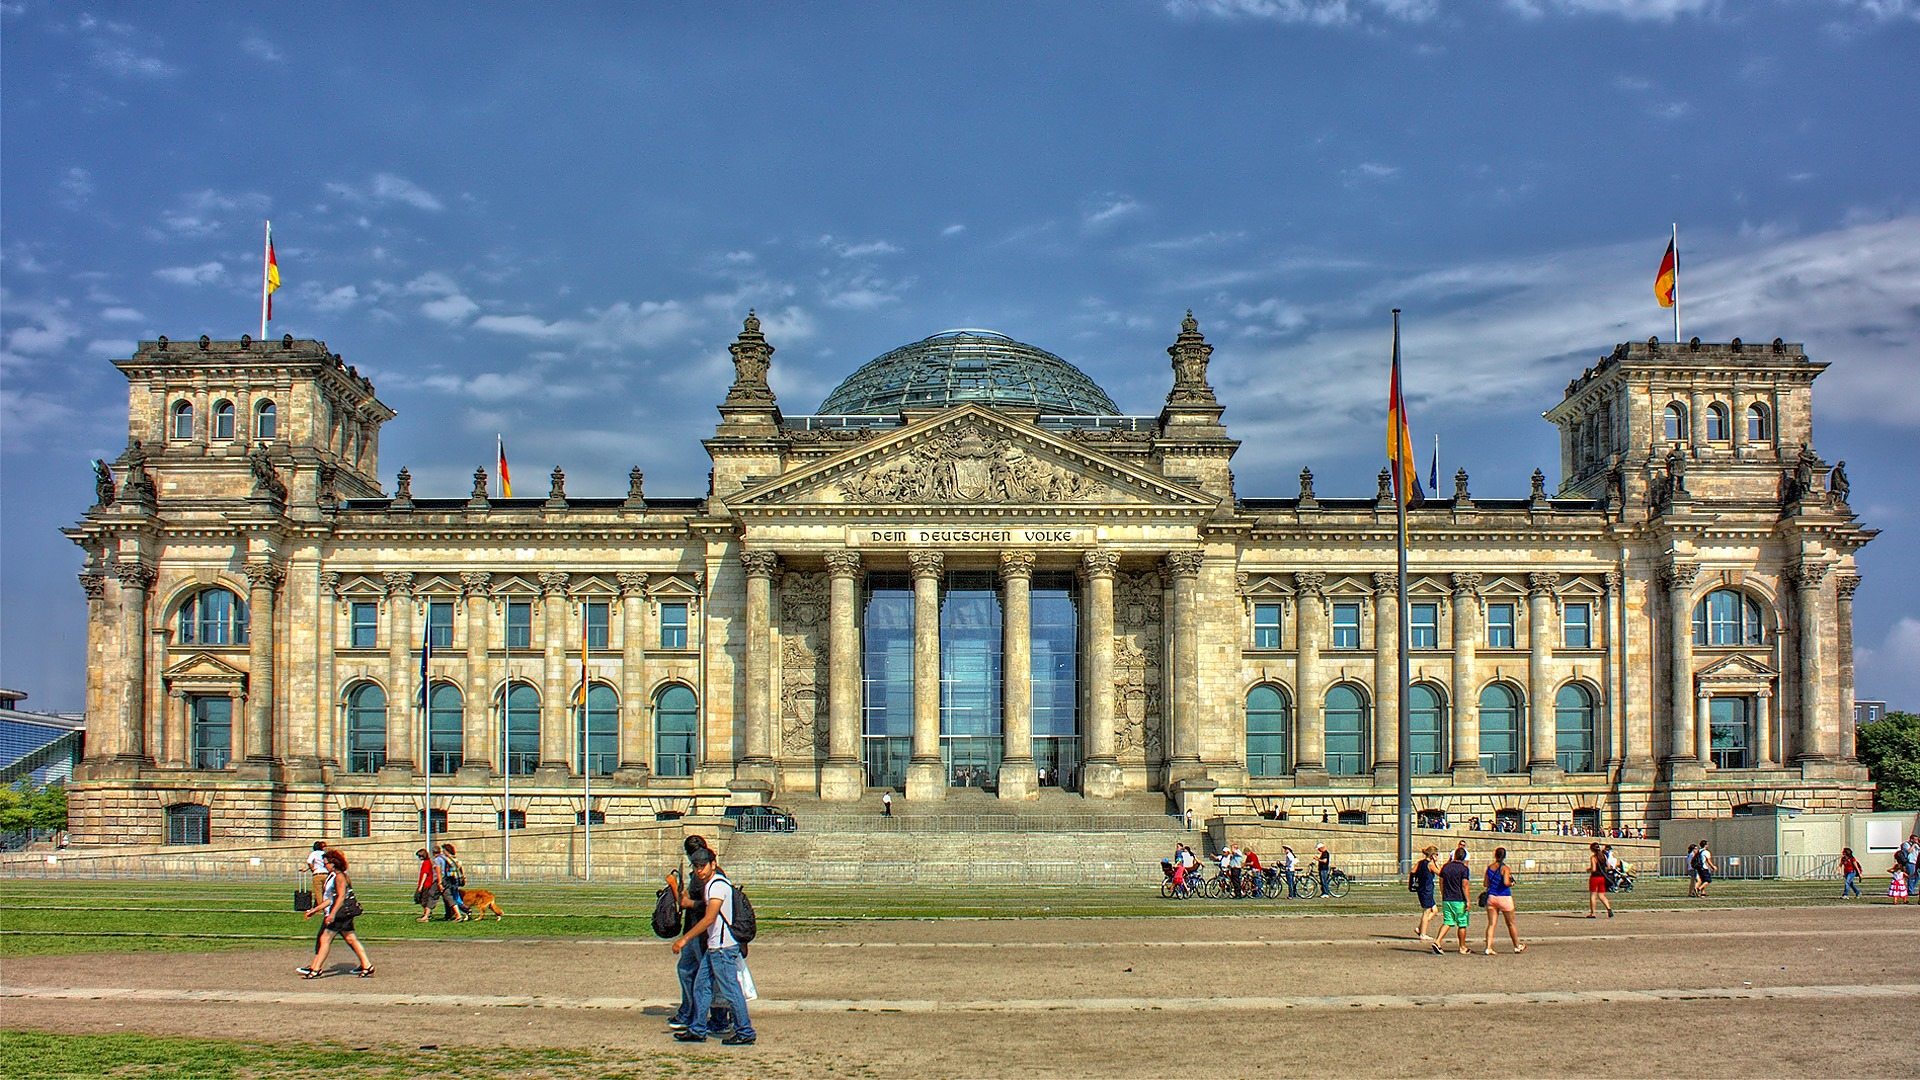 Reichstag, Edifice in Berlin, Germany